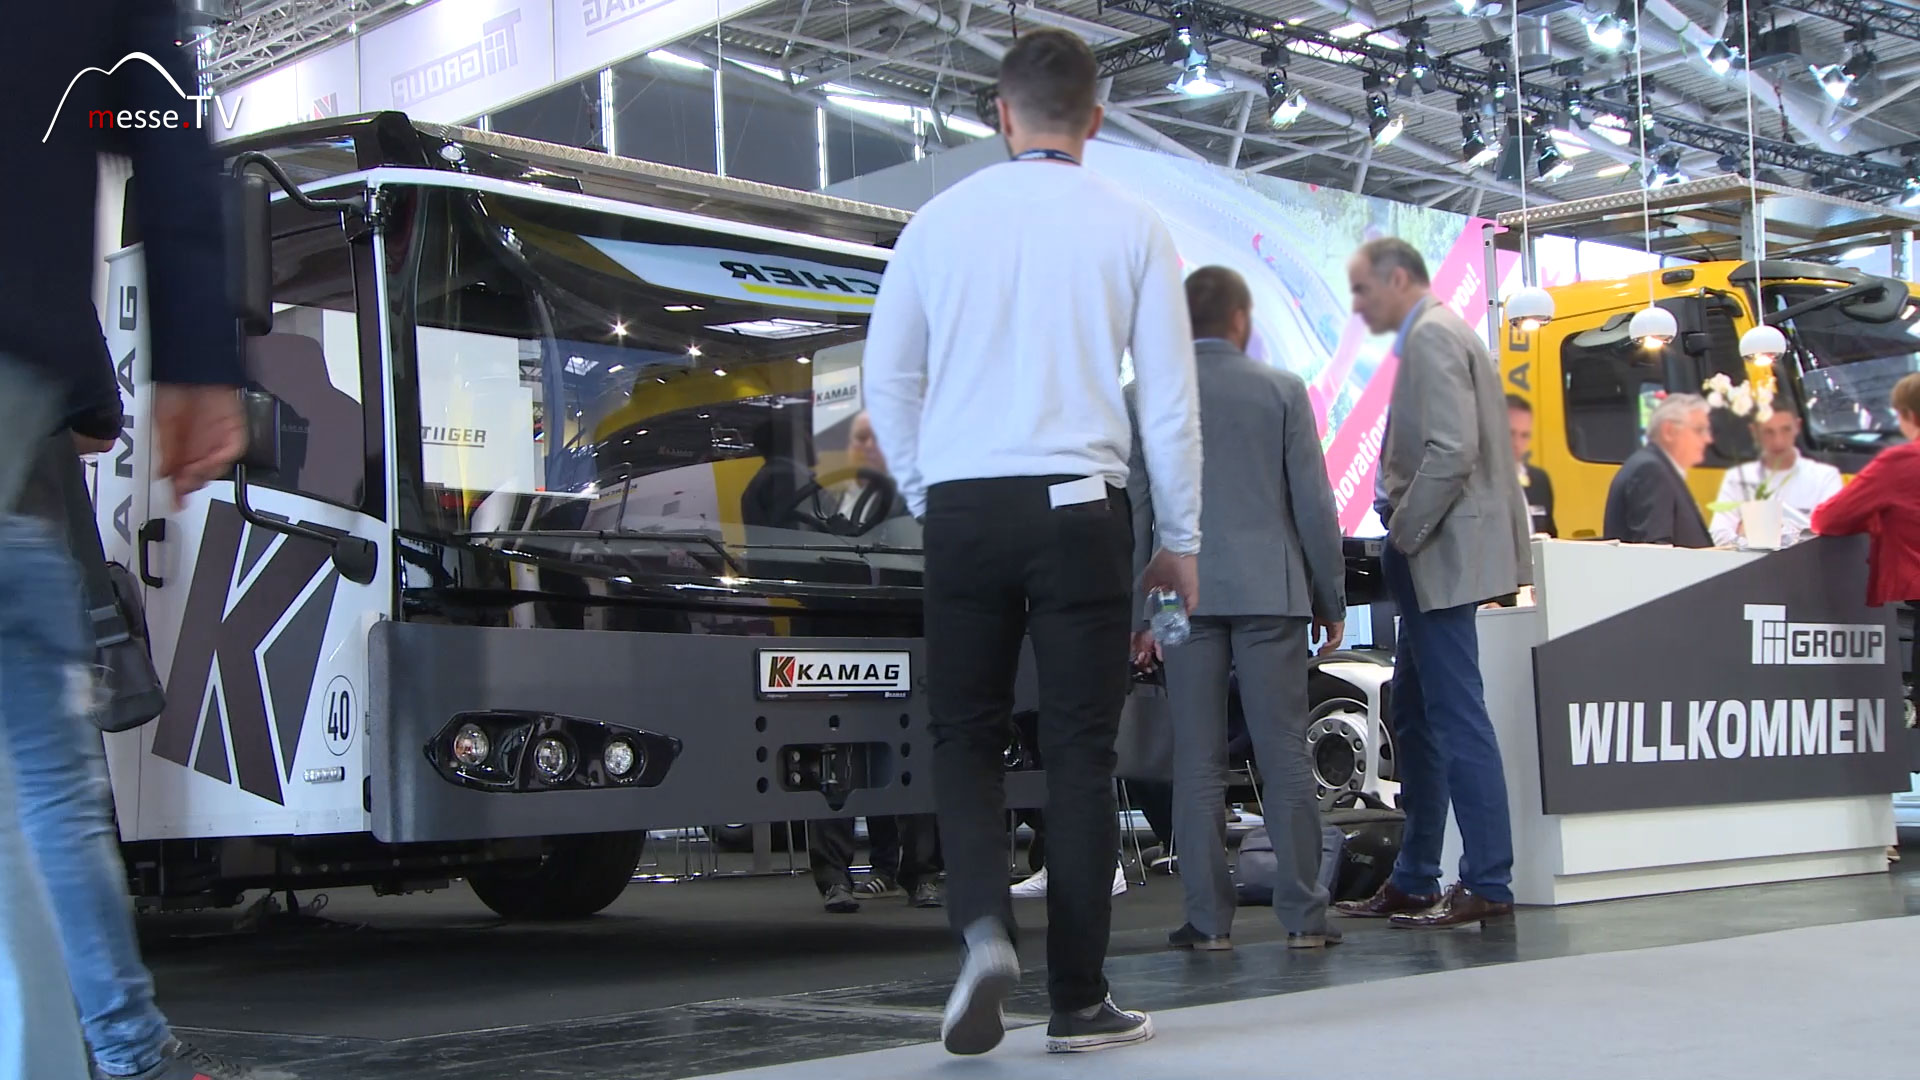 Kamag Transporttechnik Messestand transport logistic 2019 Messe München